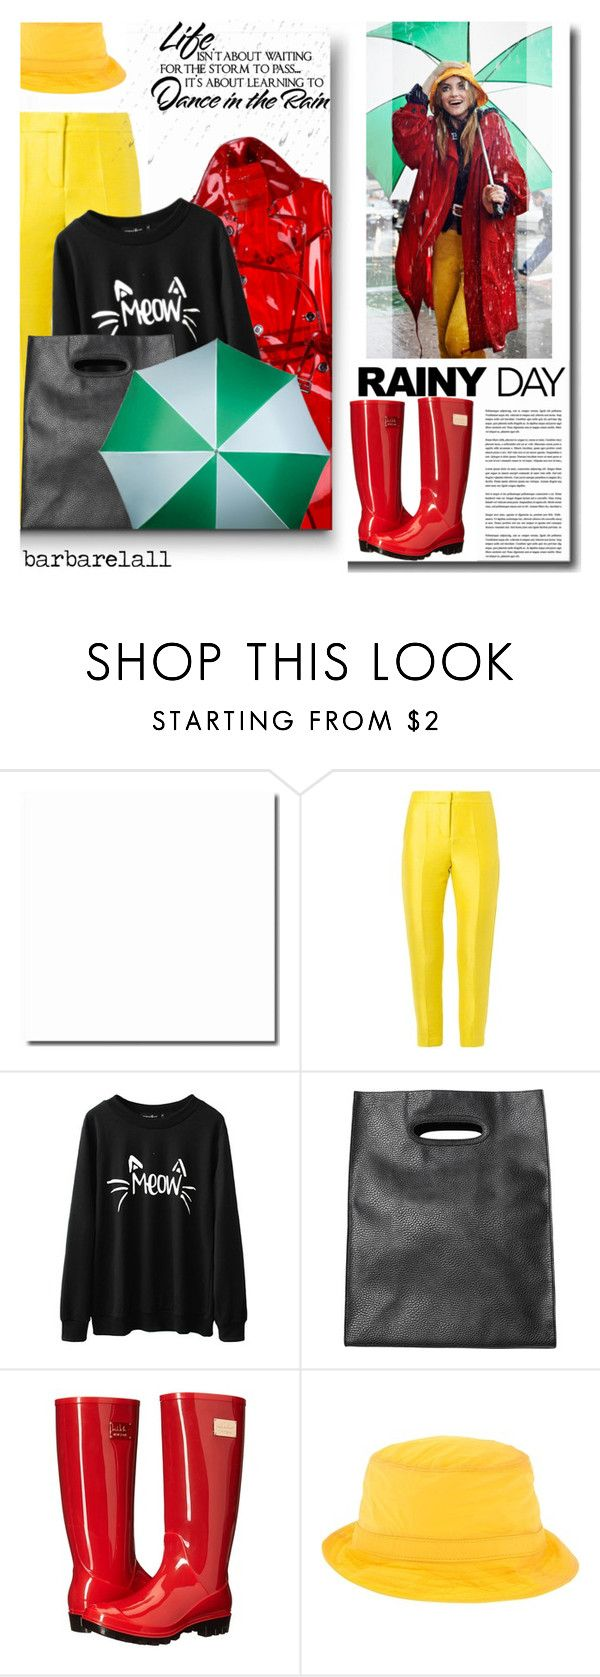 """""""Rainy Day Style"""" by barbarela11 ❤ liked on Polyvore featuring Mode, Burberry, Markus Lupfer, Monki, Nicole Miller und Dsquared2"""